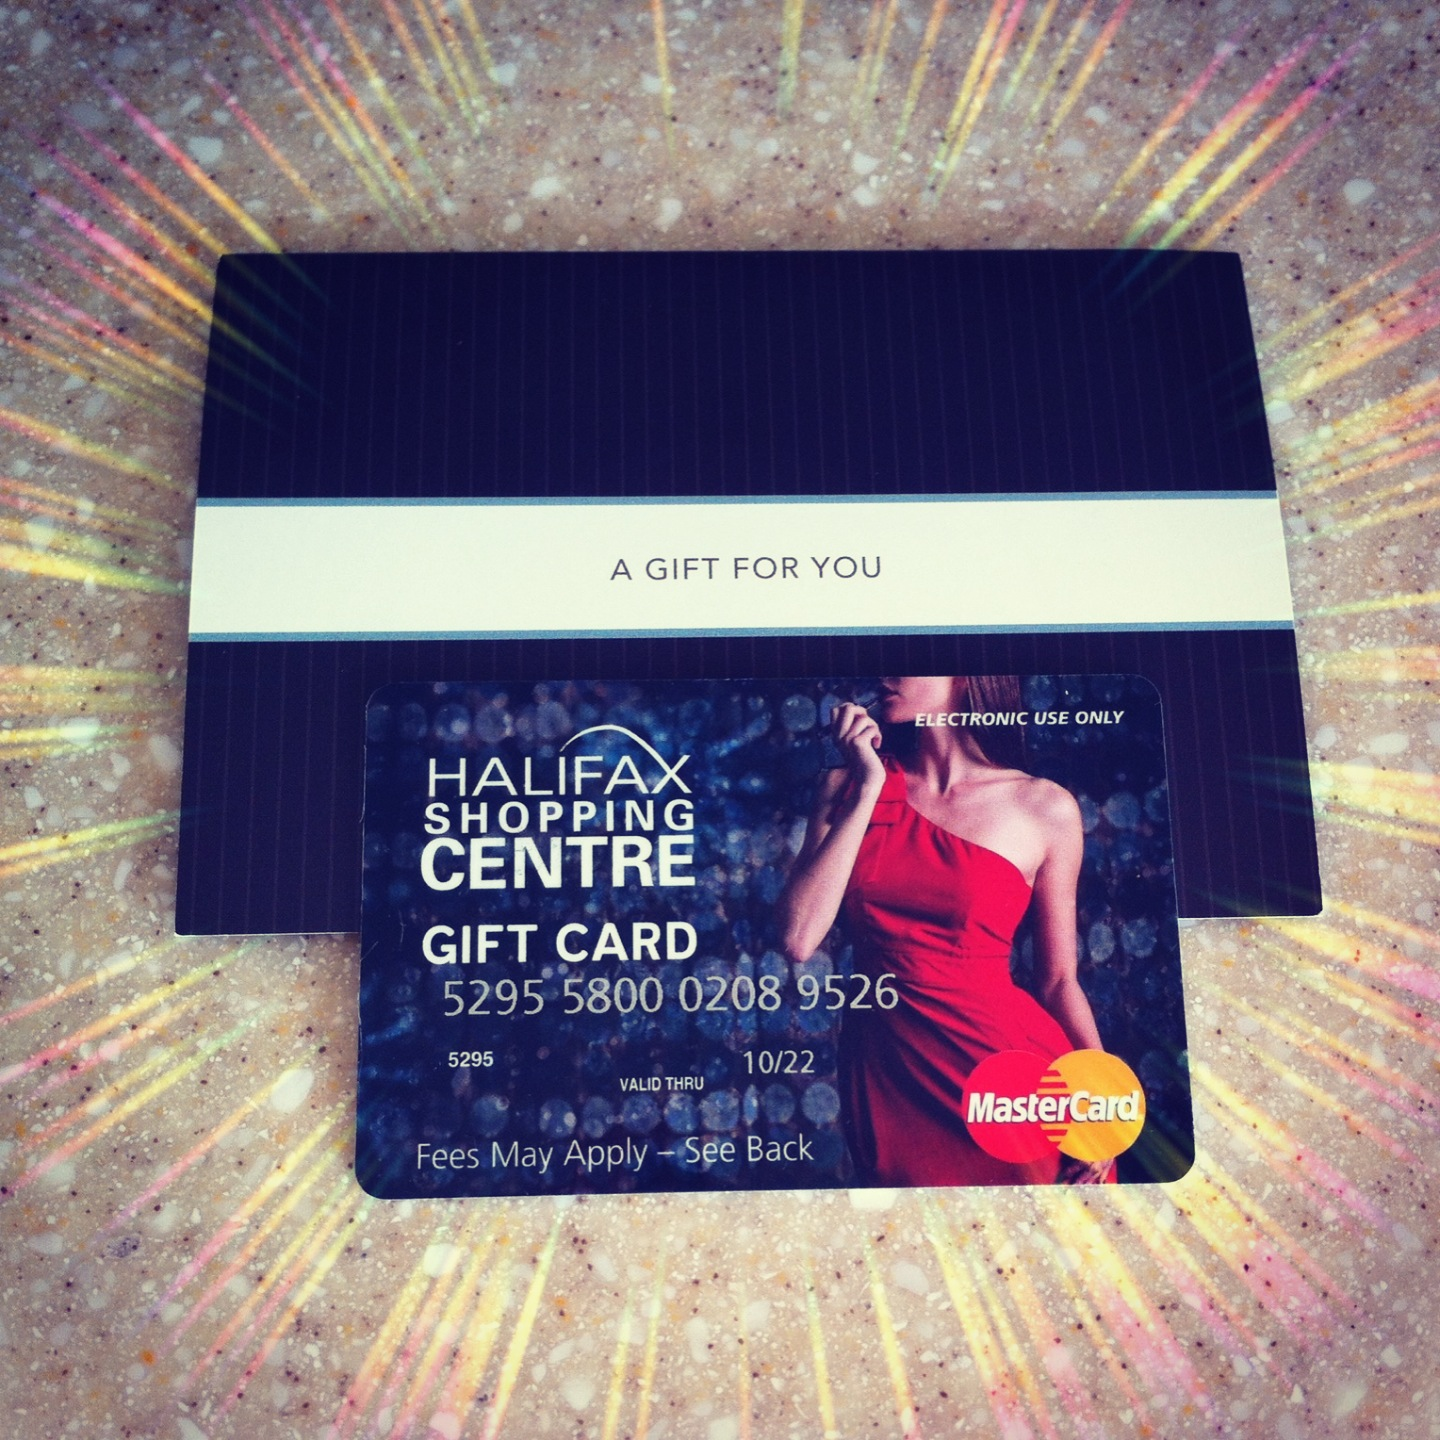 Giveaways, Gift Cards, Halifax Shopping Centre, Christmas Shopping, Gifts